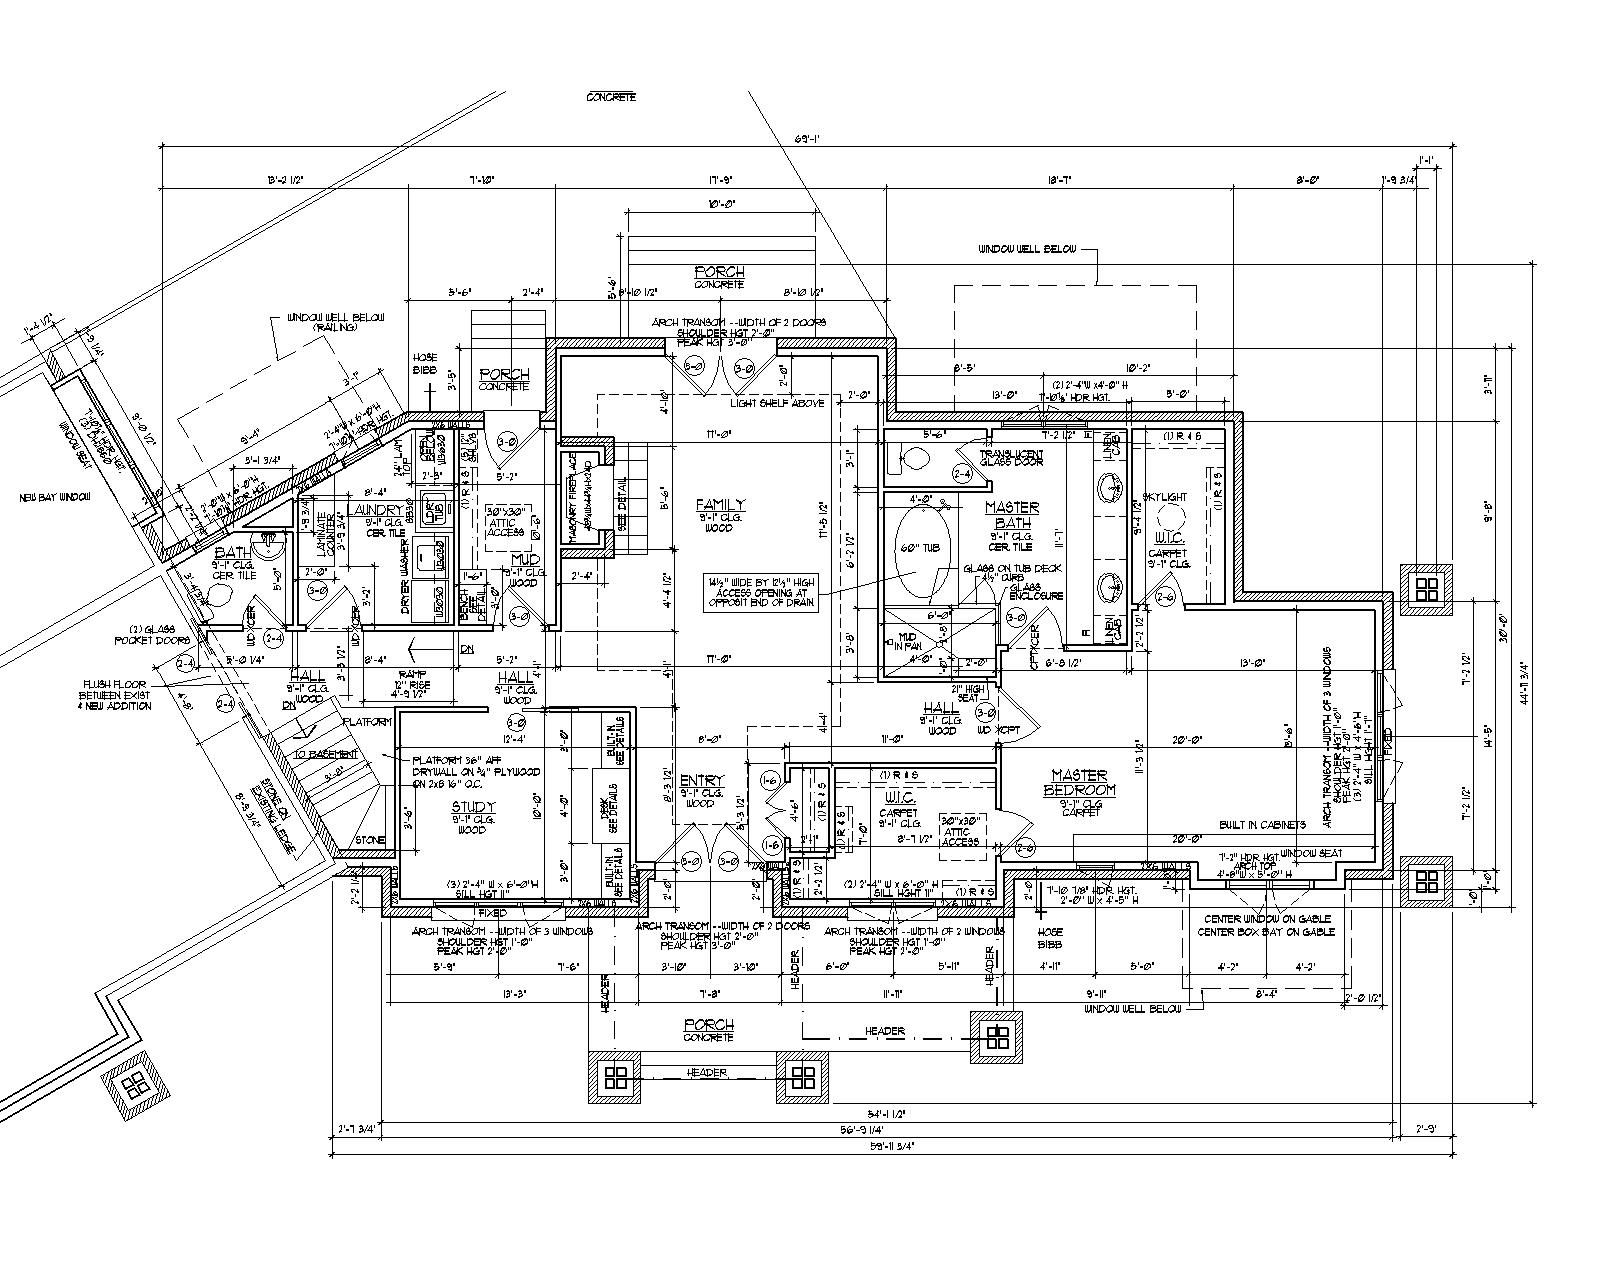 House blueprint architectural plans architect drawings for homes architect drawing for home chicago peoria springfield illinois rockford champaign bloomington illinois aurora joliet naperville illinois malvernweather Image collections